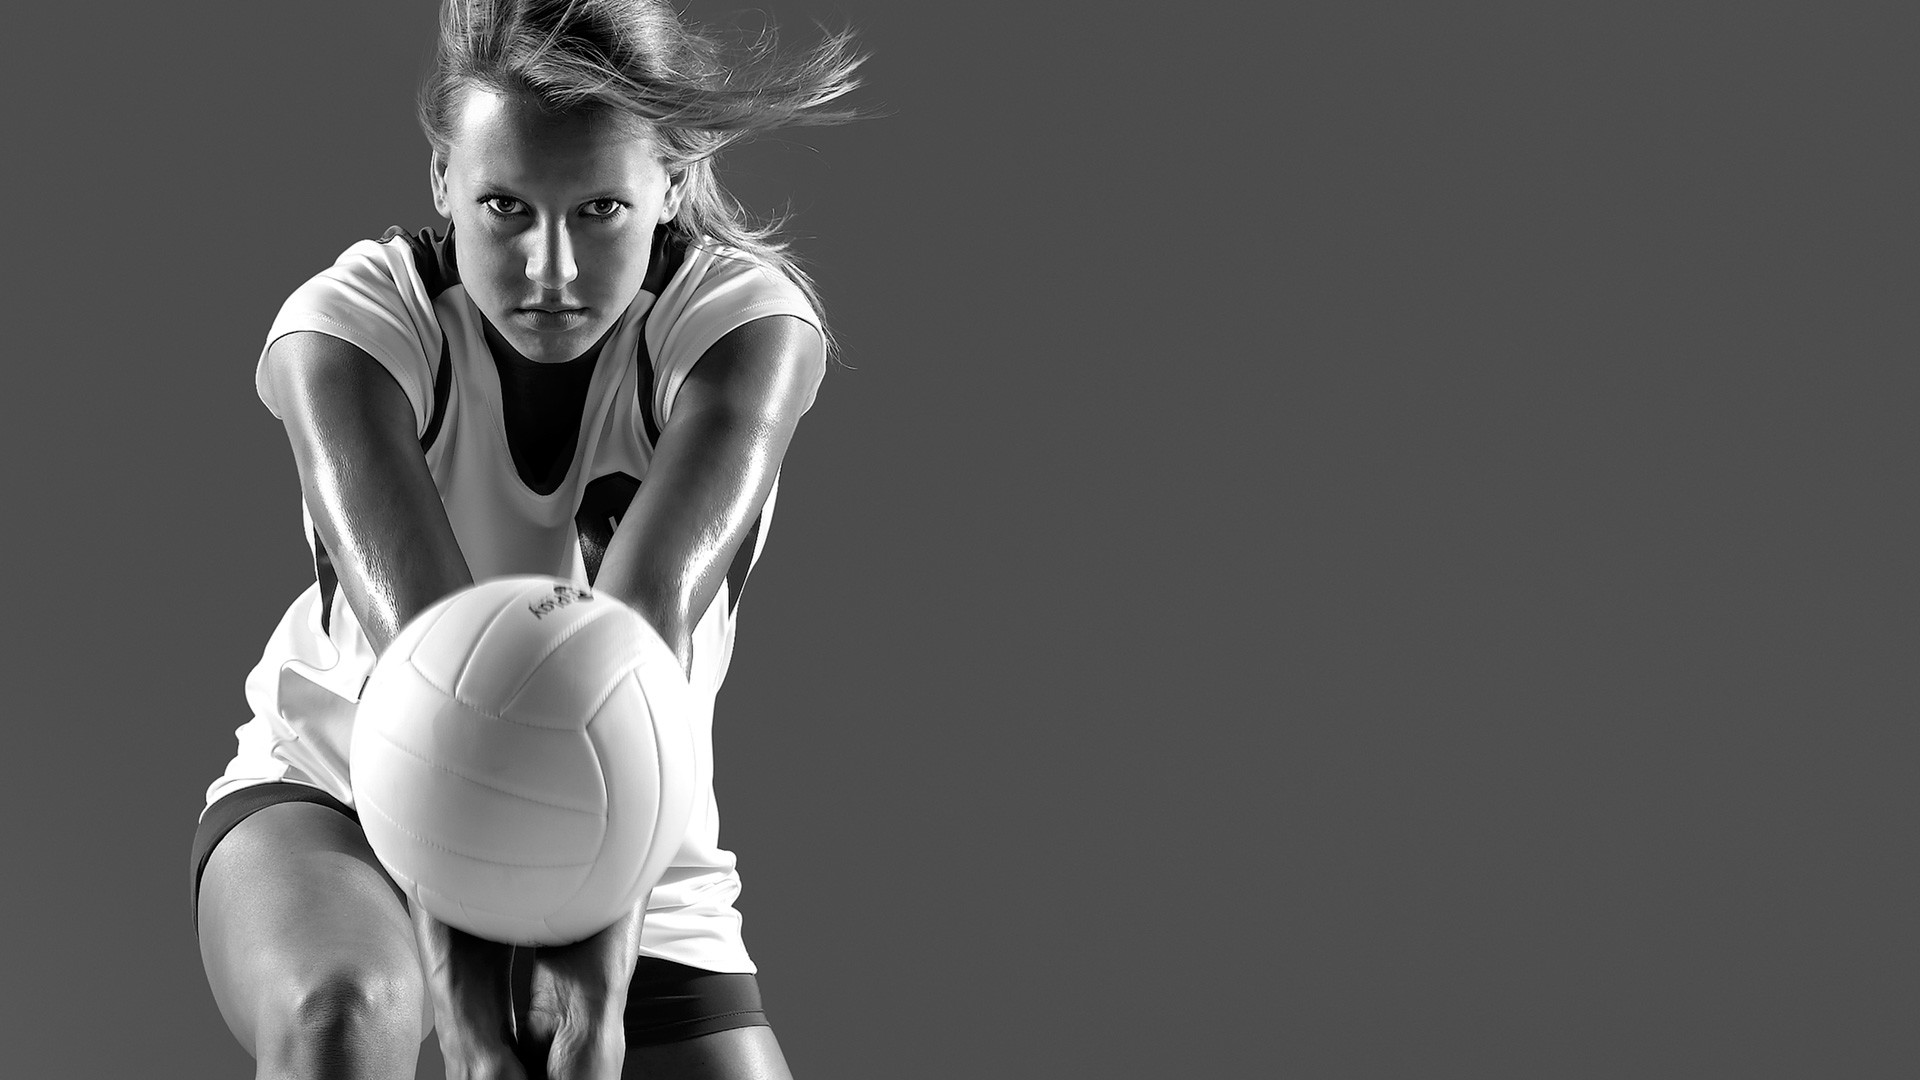 1920x1080 Volleyball Backgrounds Luxury Volleyball Wallpapers O Oshenka Image Of 56 Unique Volleyball Backgrounds Photos